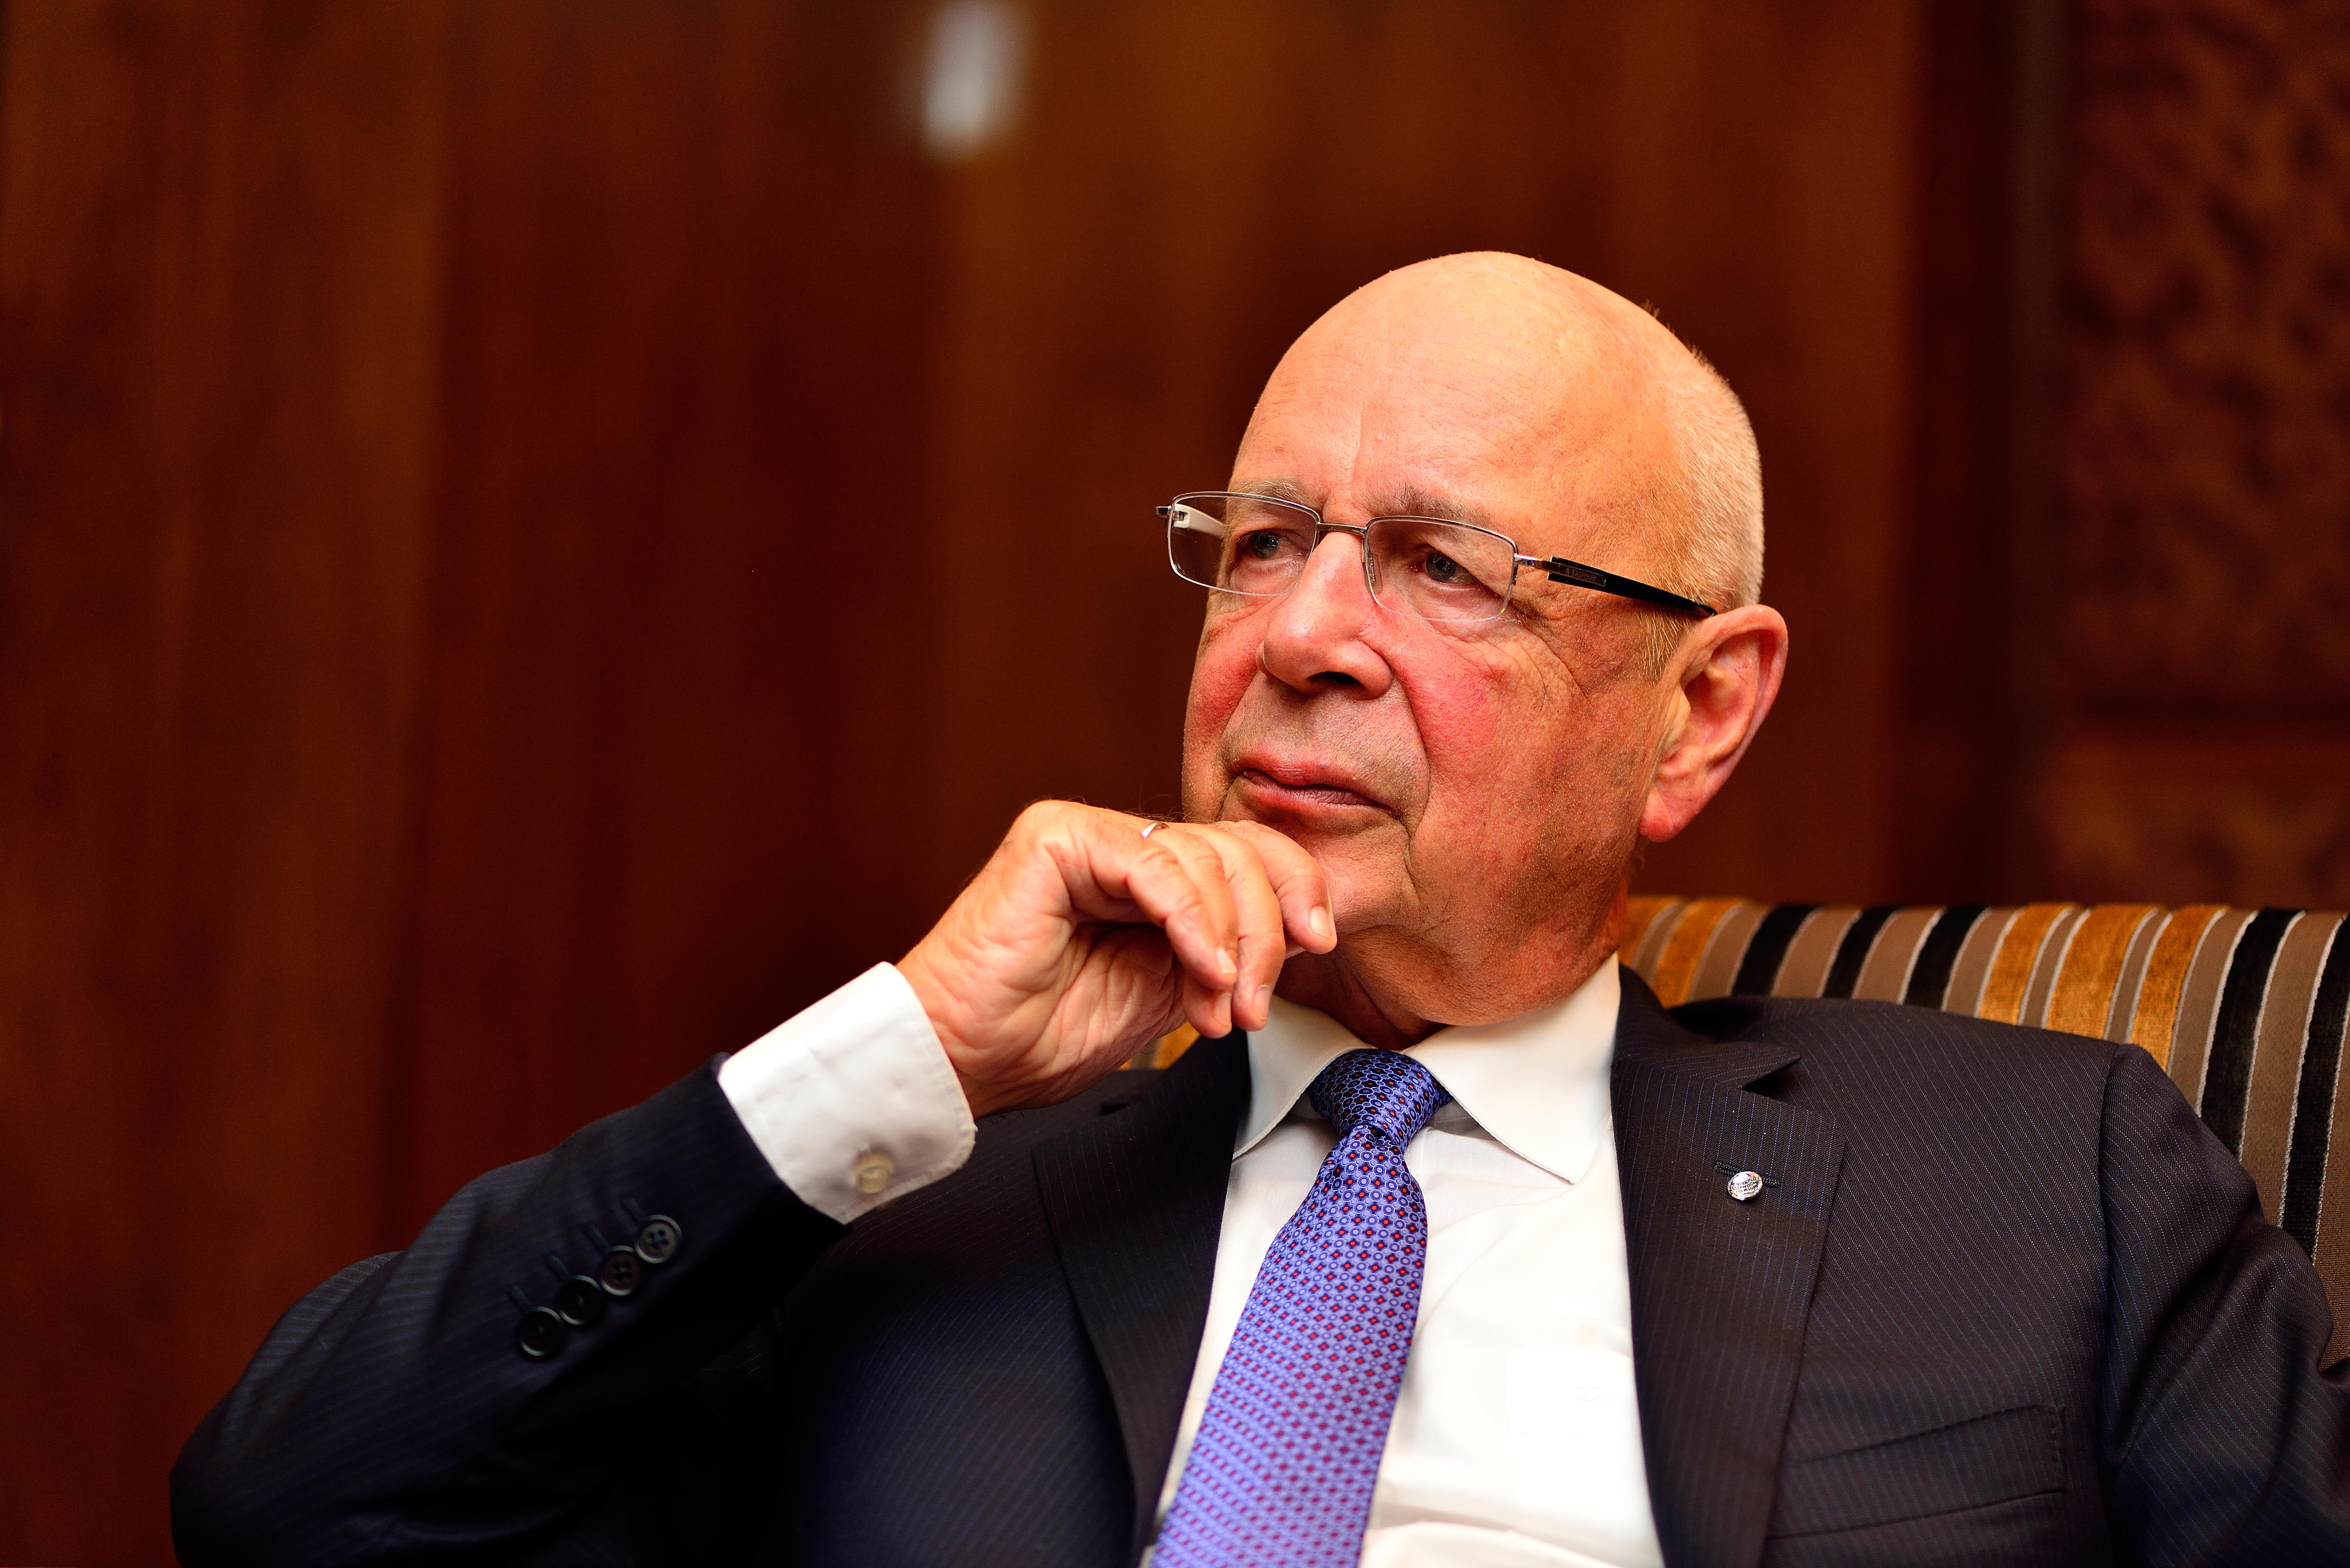 Profile Shoot Of Founder And Executive Chairman Of The World Economic Forum Klaus Schwab